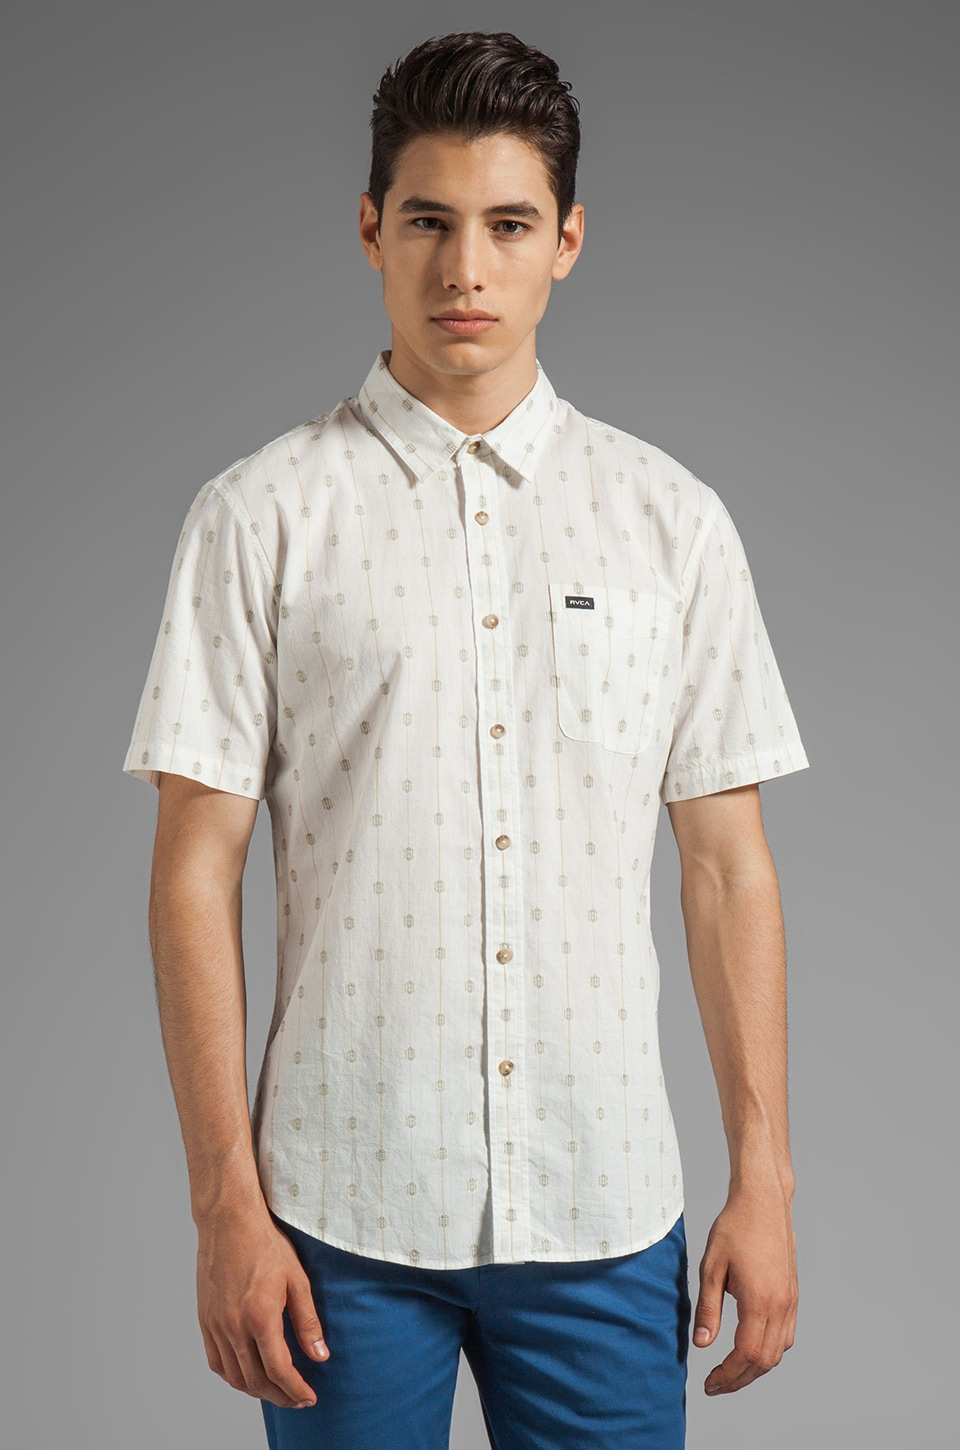 RVCA Sumac Short Sleeve Shirt in Vintage White